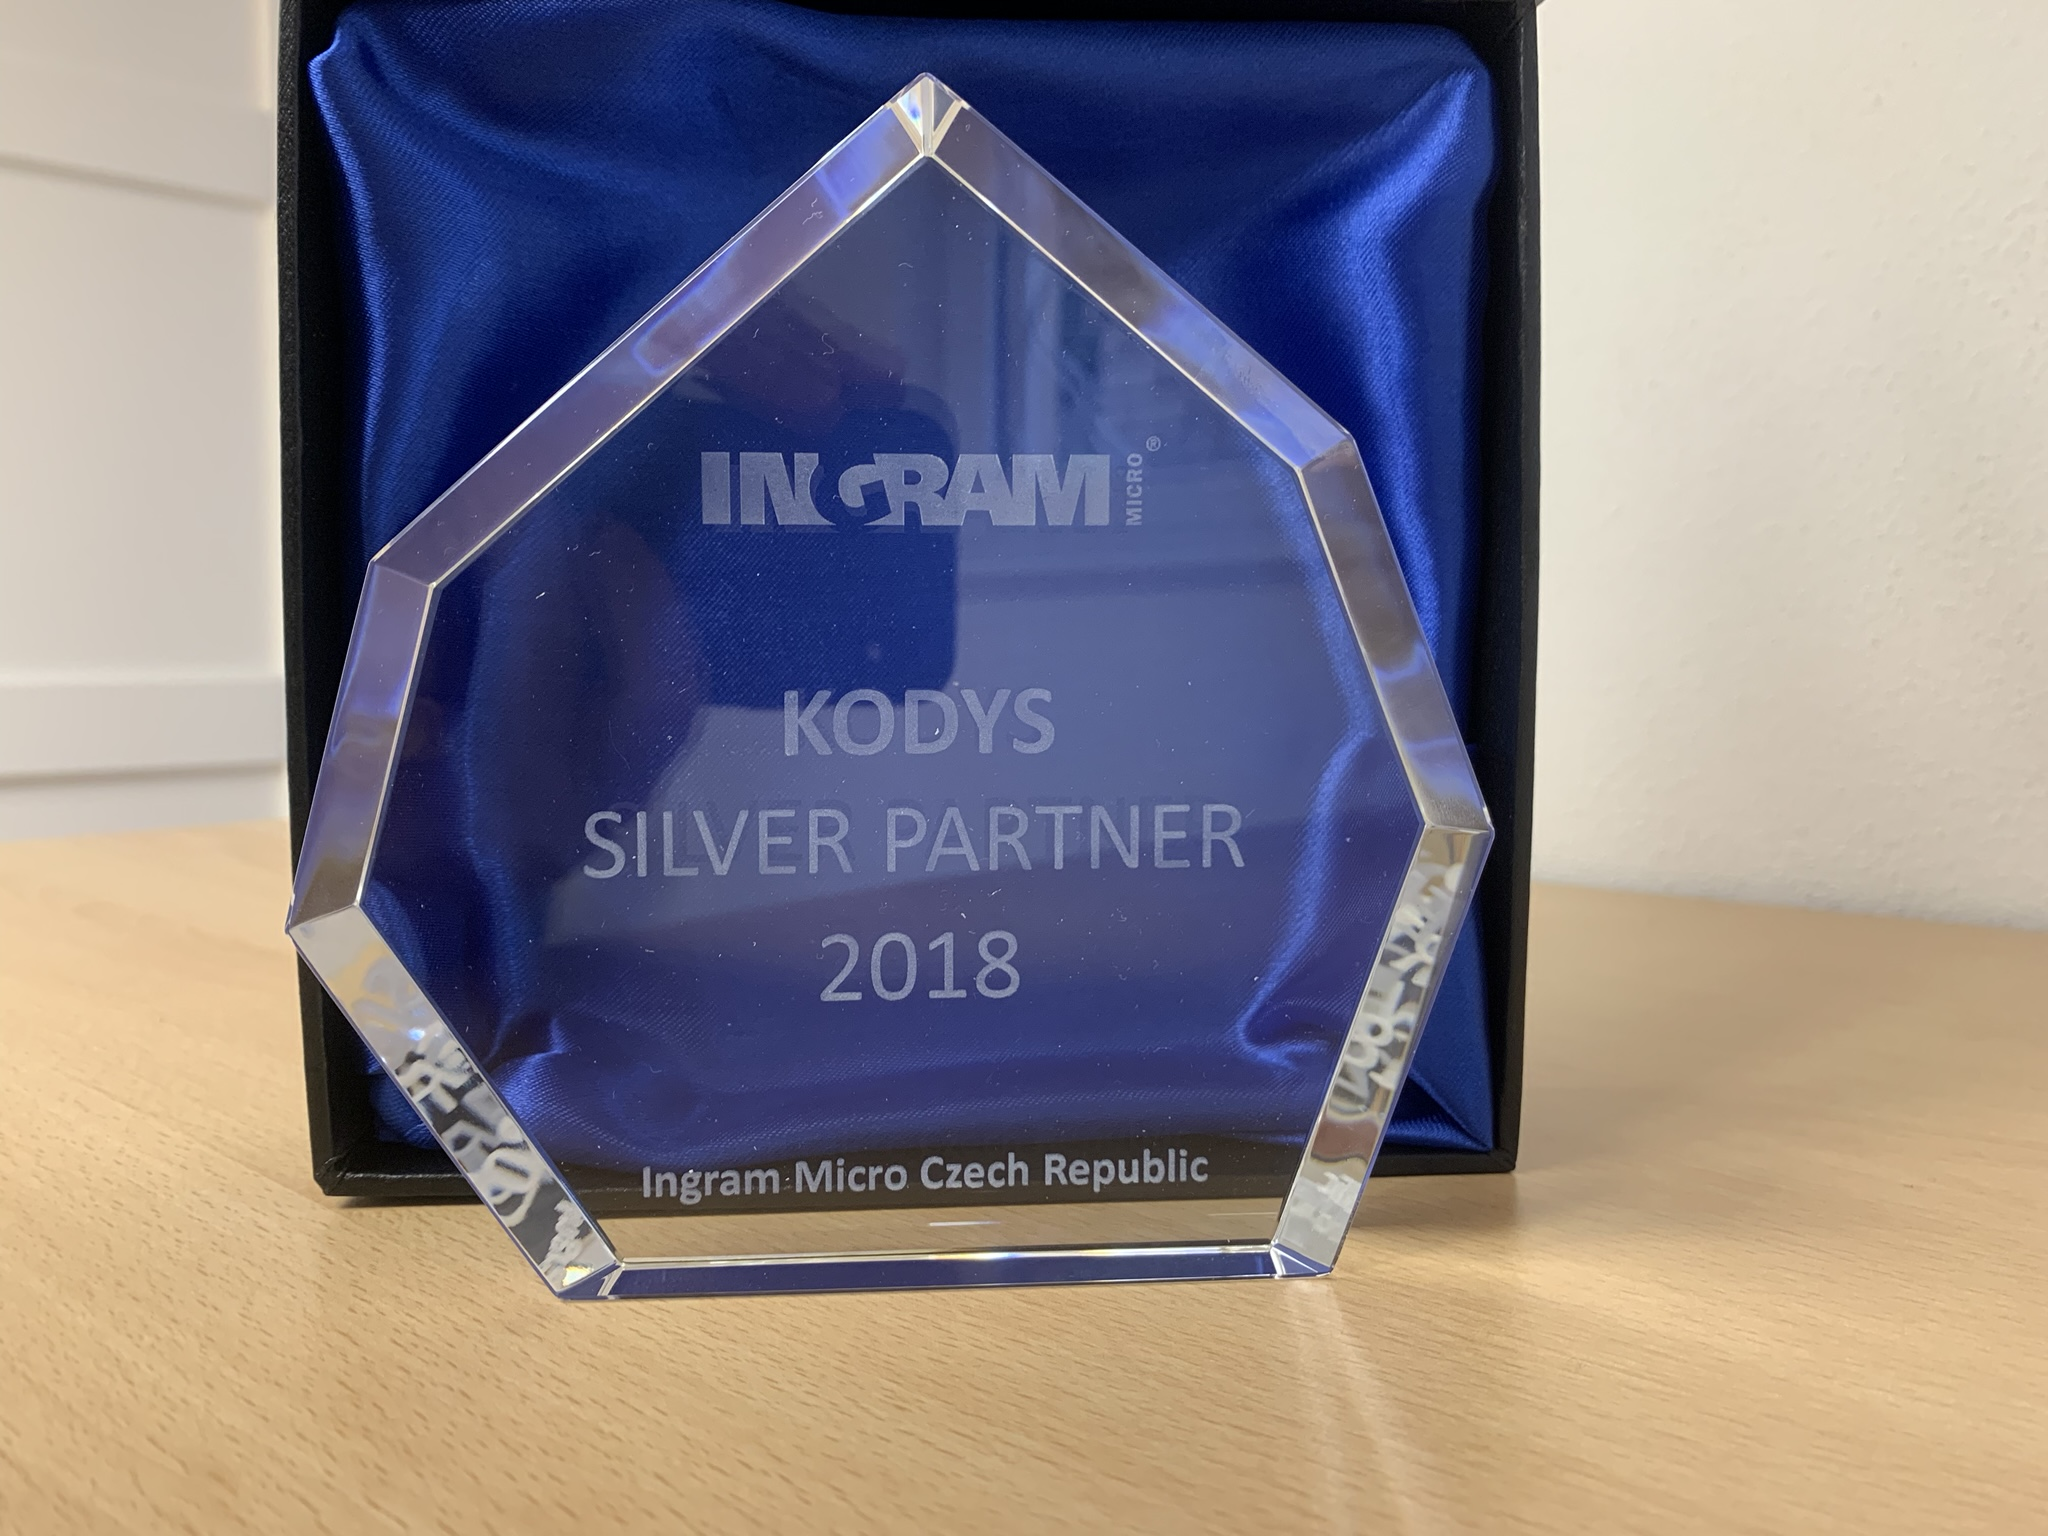 ingram micro czech republic, kodys